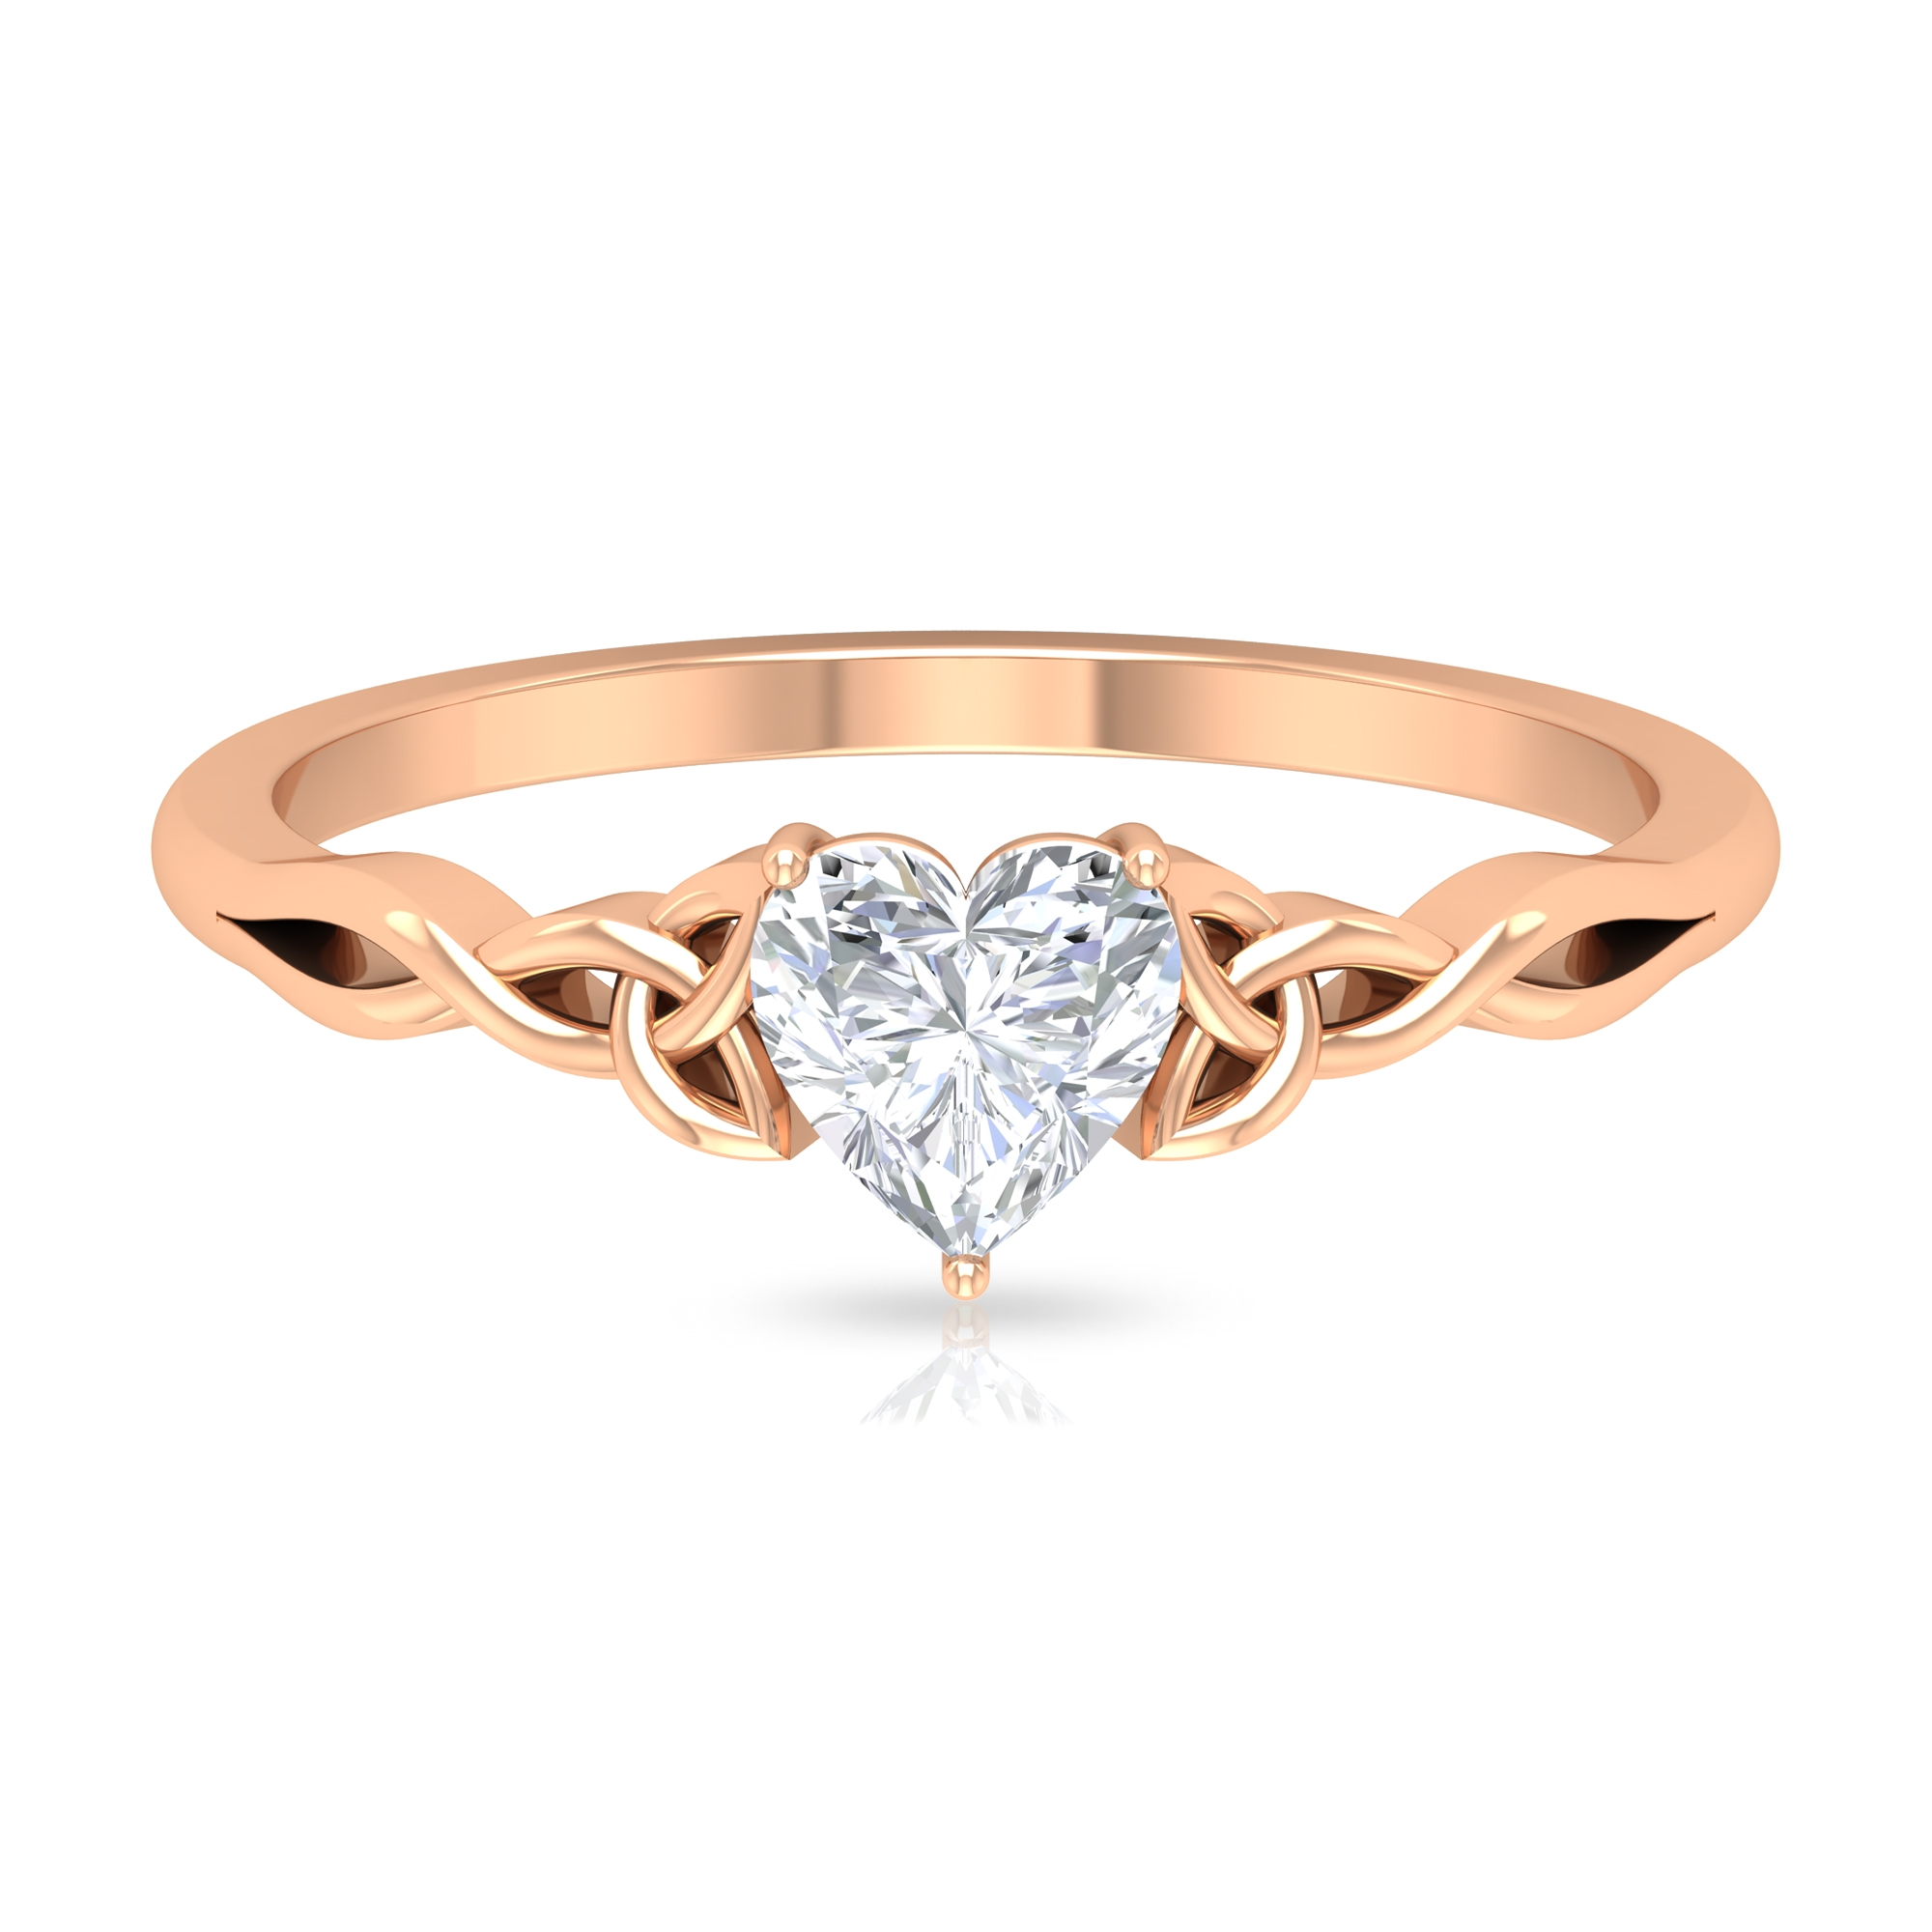 5.40 MM Heart Shape Diamond Solitaire Ring in 3 Prong Basket Setting with Celtic Band